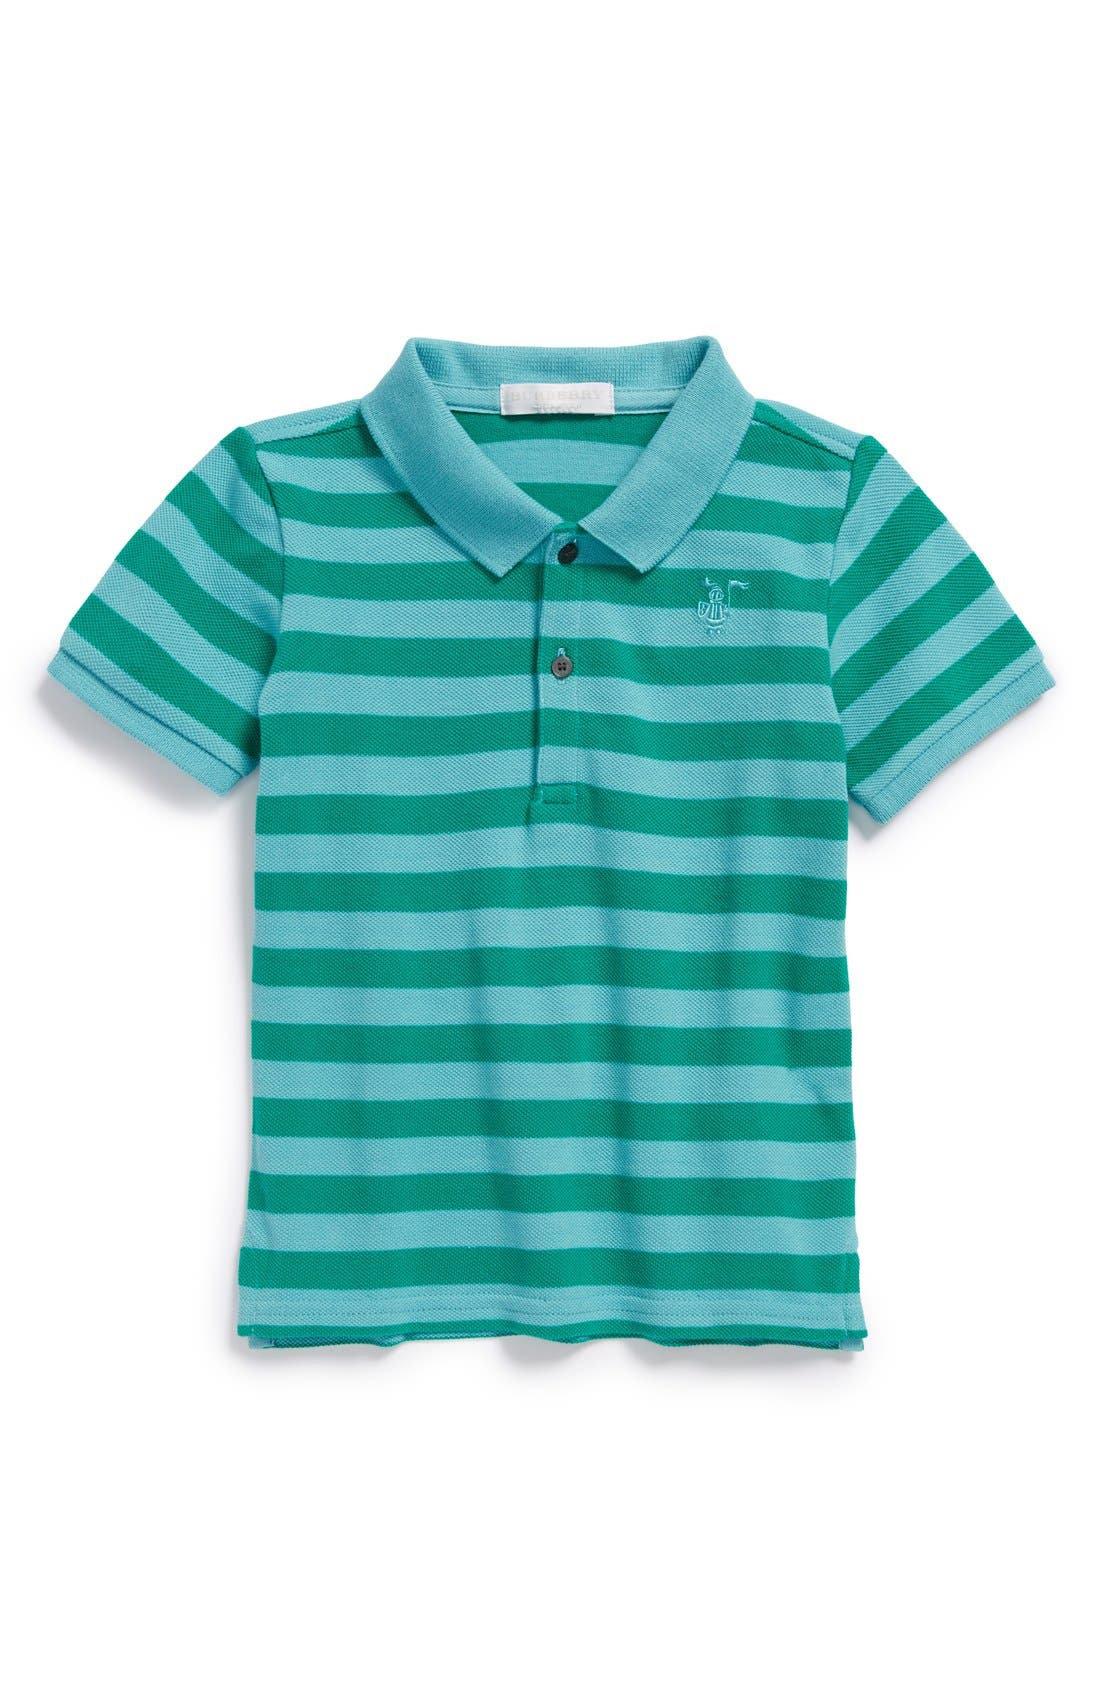 Main Image - Burberry Stripe Polo (Toddler Boys)